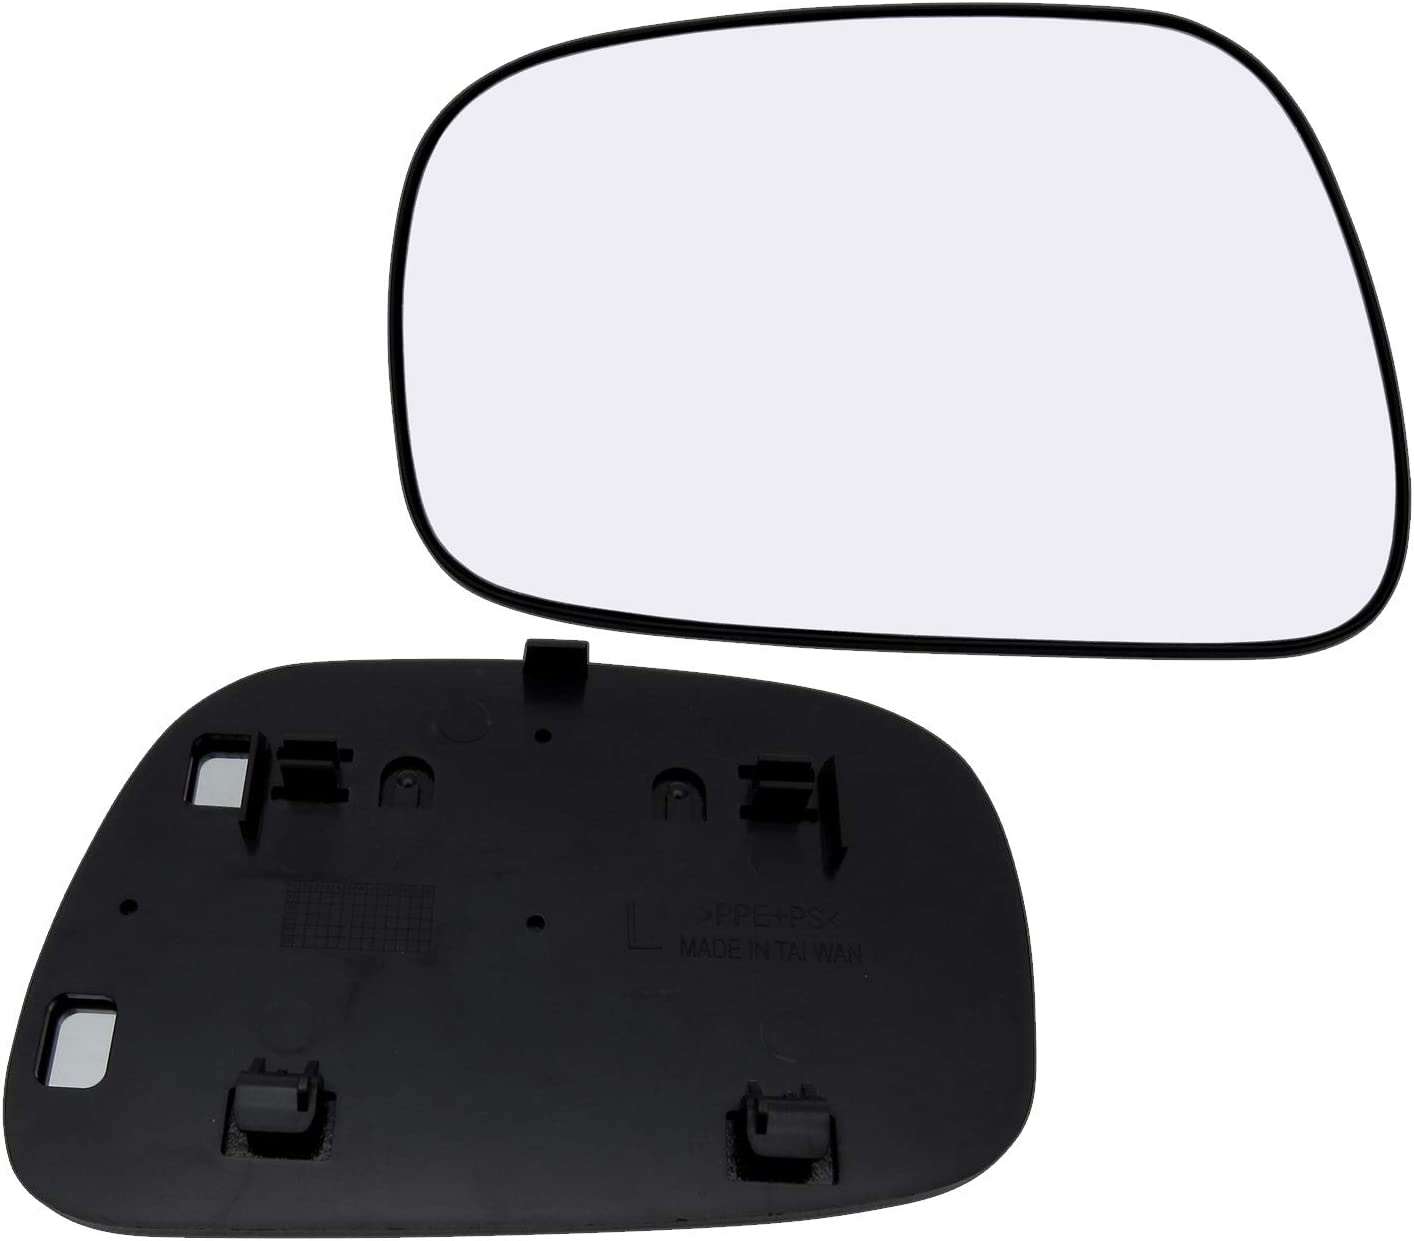 New Replacement Driver Side Mirror Glass W Backing Compatible With 2002-2006 Toyota Camry Sold By Rugged TUFF